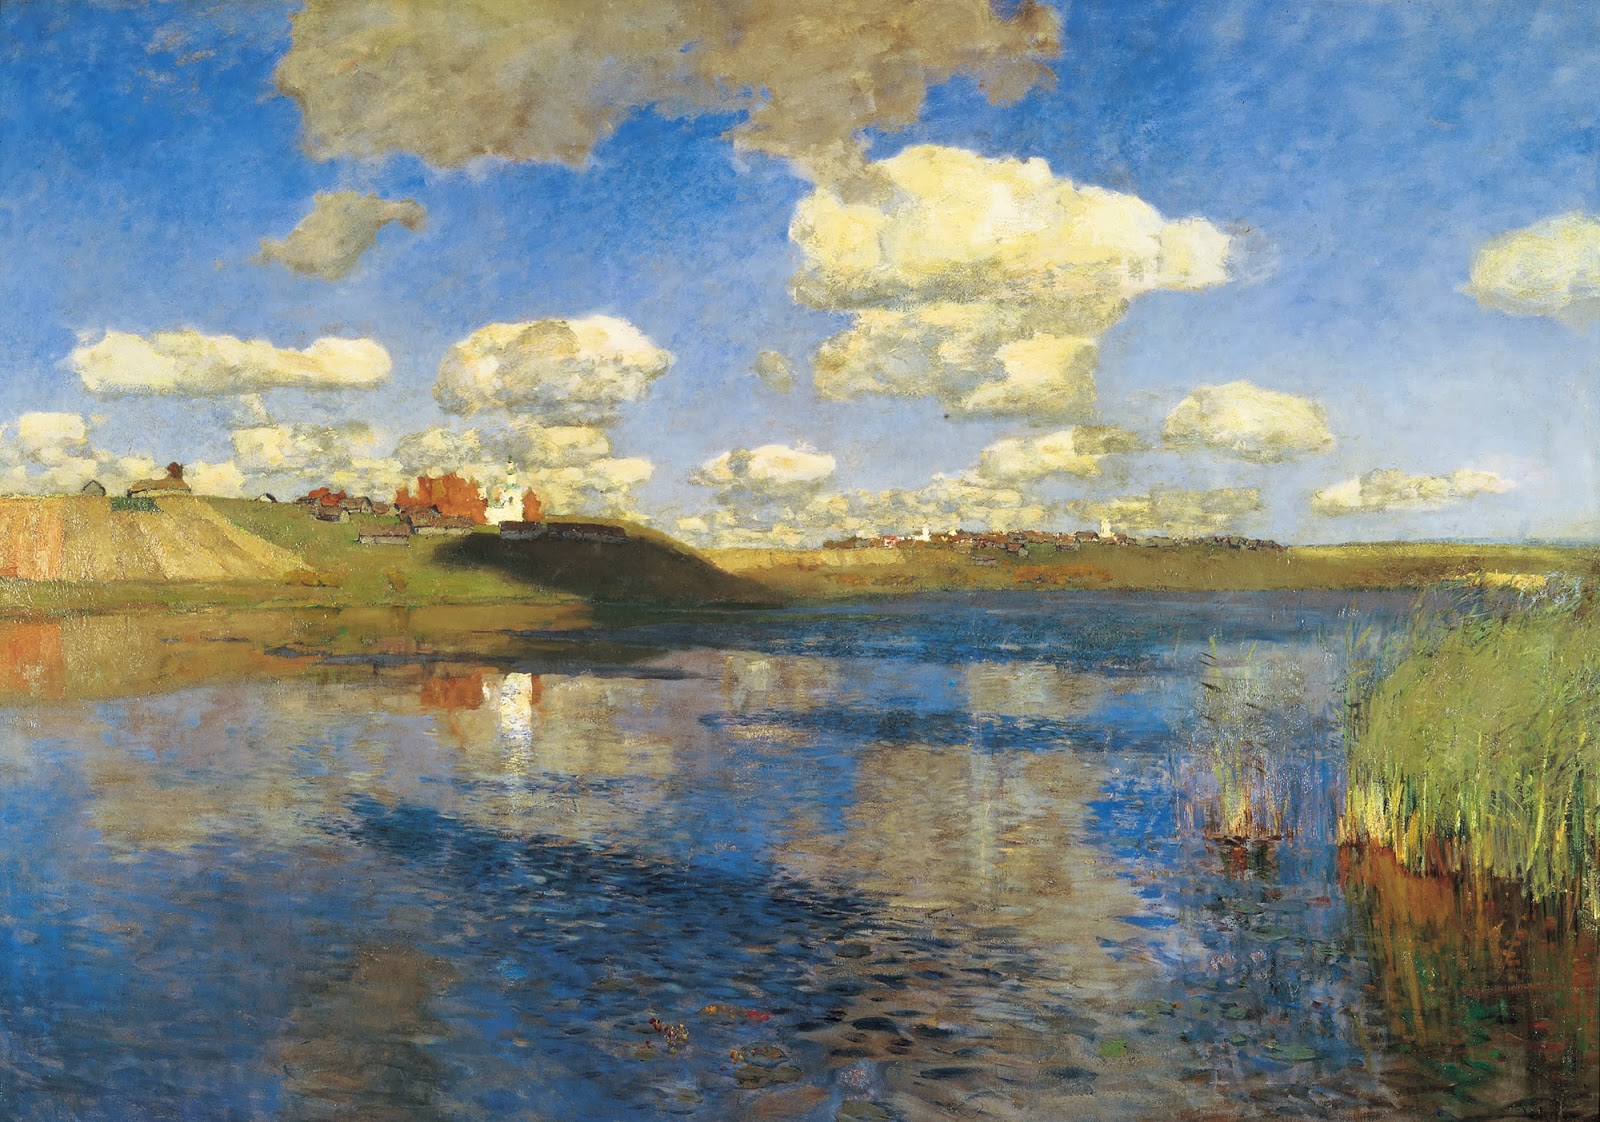 Champions of the north russian and canadian landscape art for Artworks landscape ltd